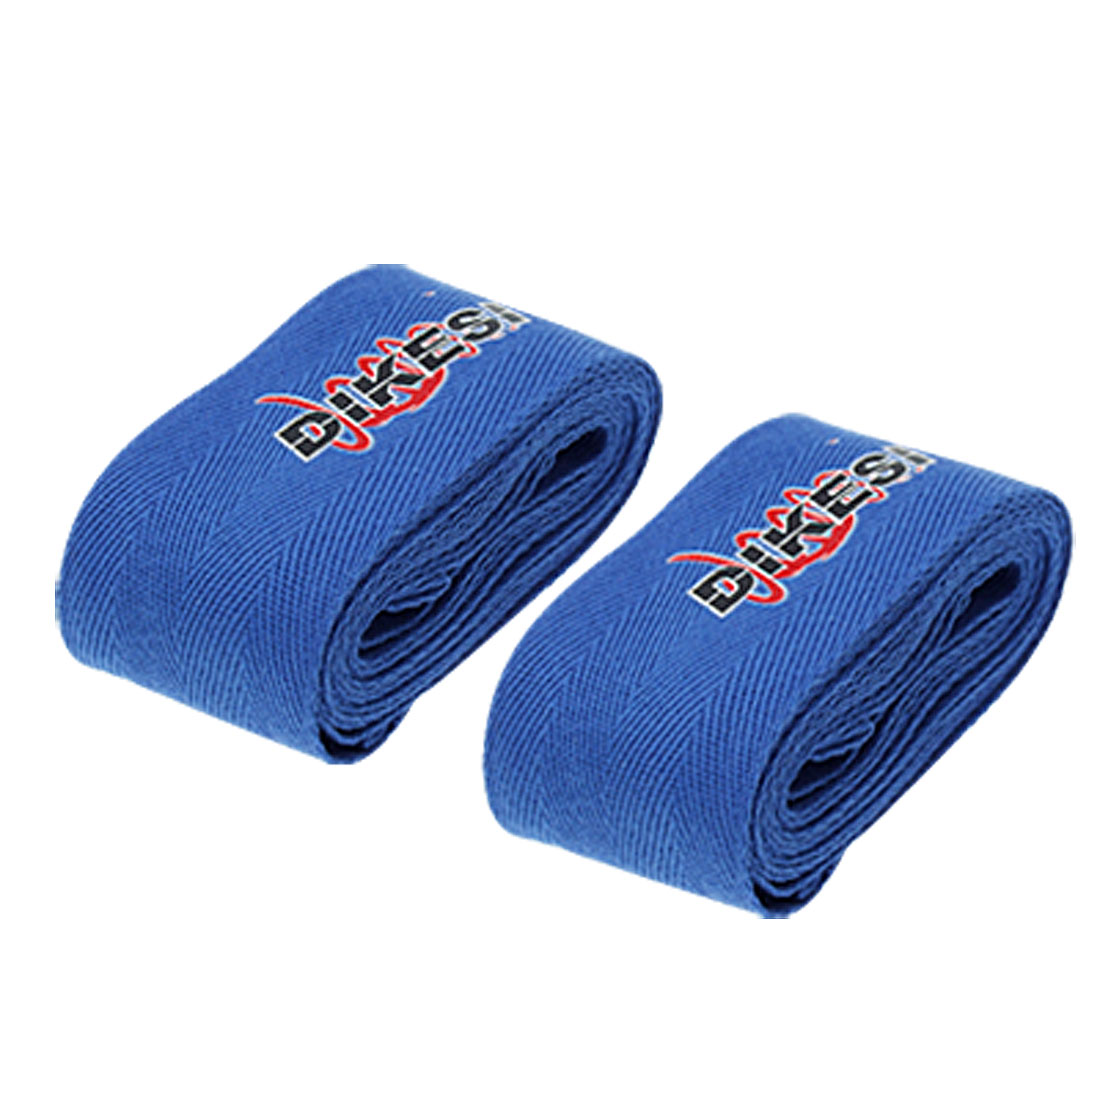 1 Pair Boxing Kick Martial Arts Hand Palm Wrist Wrap Bandage Blue